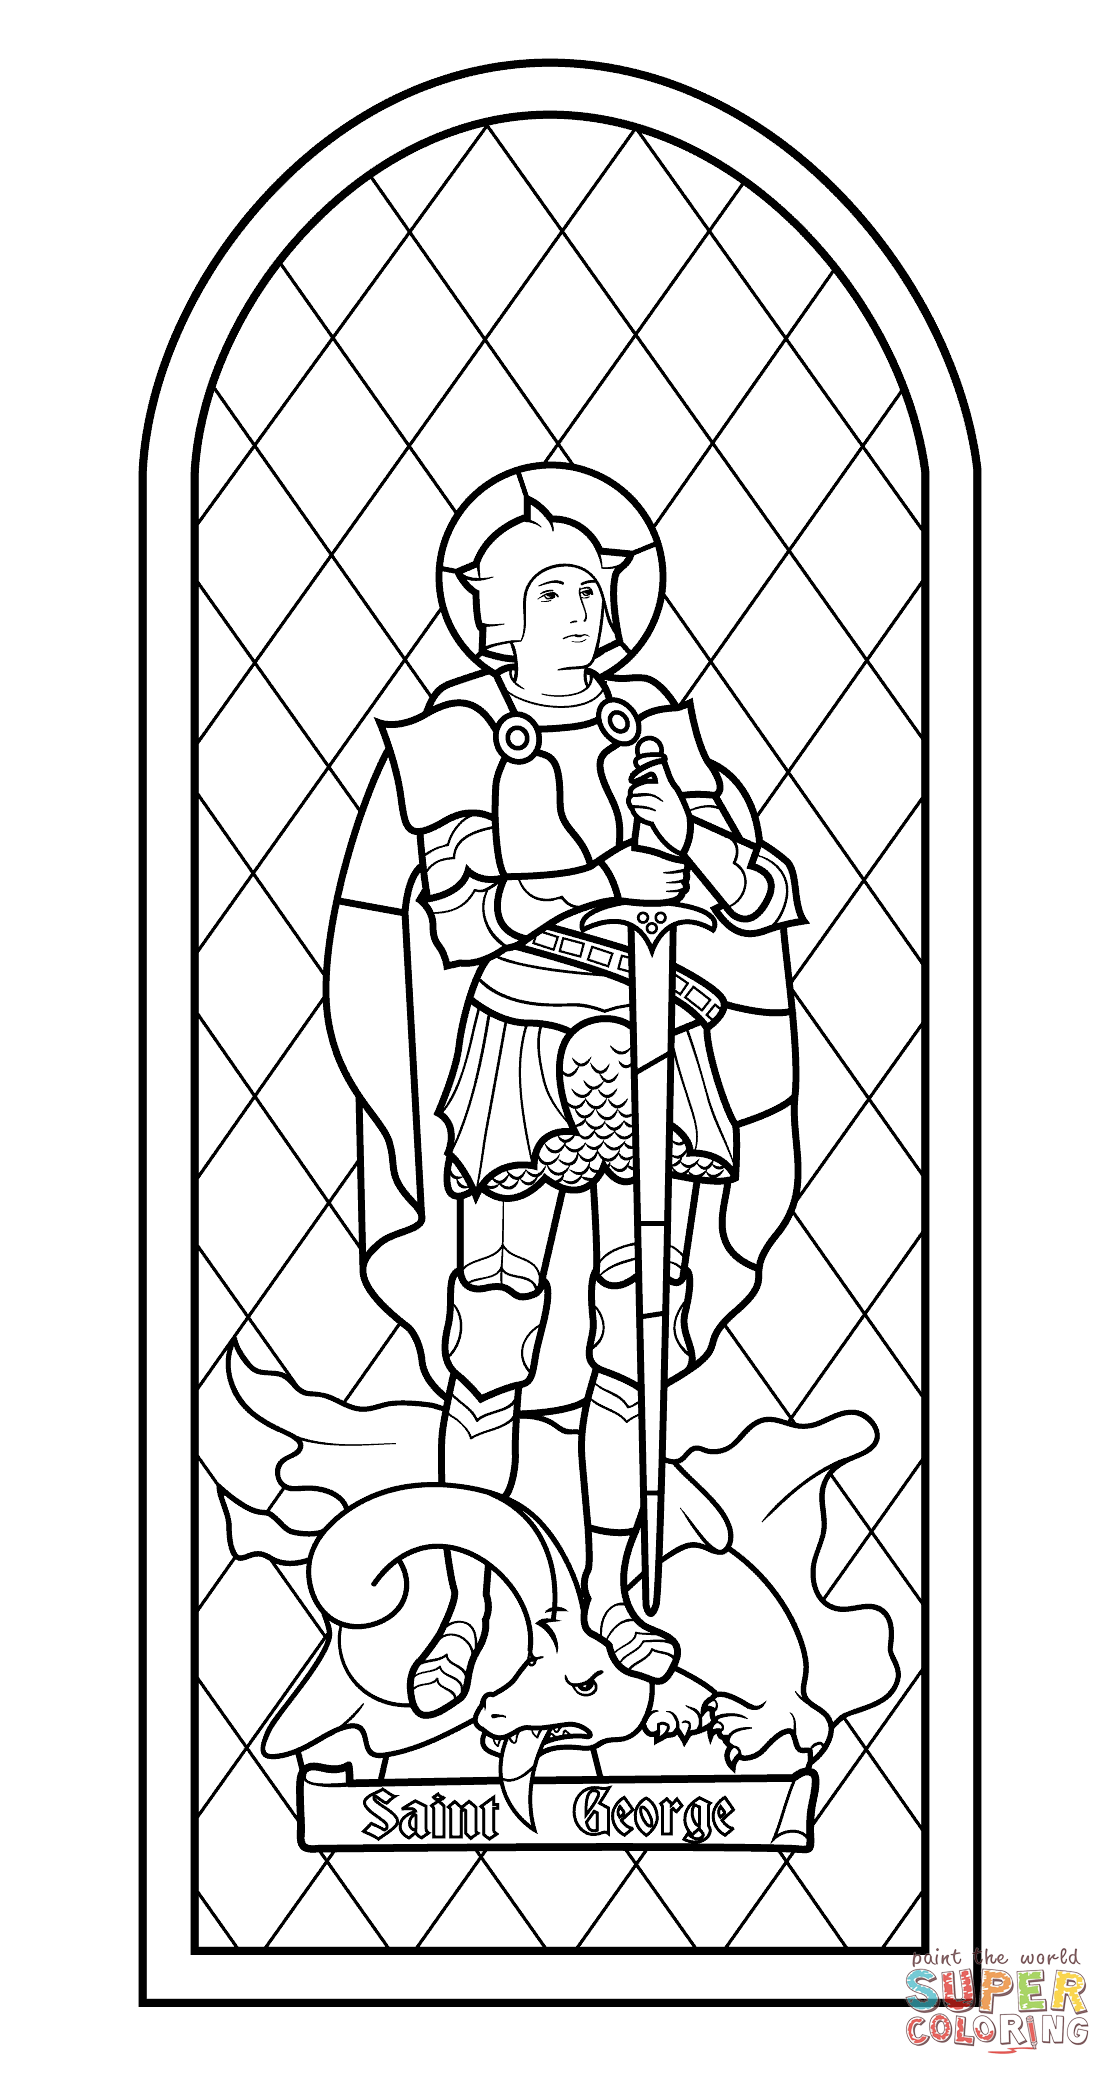 Saint George Stained Glass Coloring Page Free Printable Coloring Pages Medieval Stained Glass Saint George And The Dragon Coloring Pages